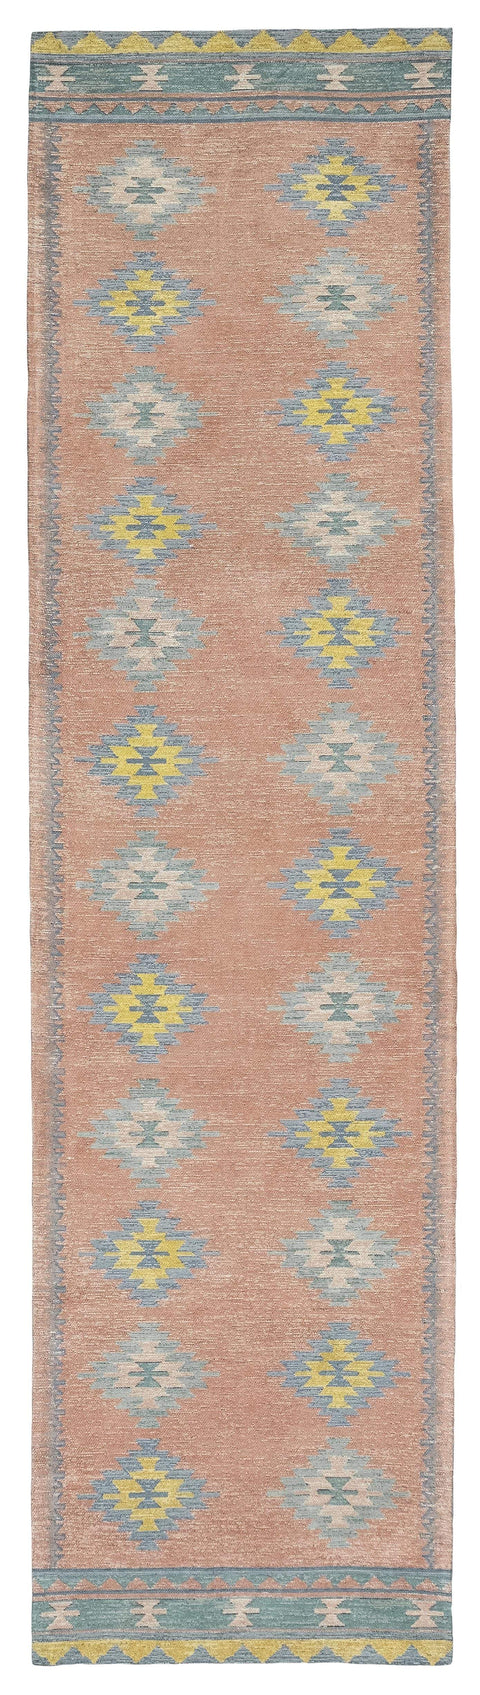 Ariel Peach and Blue Multi-Colour Diamond Tribal Runner Rug